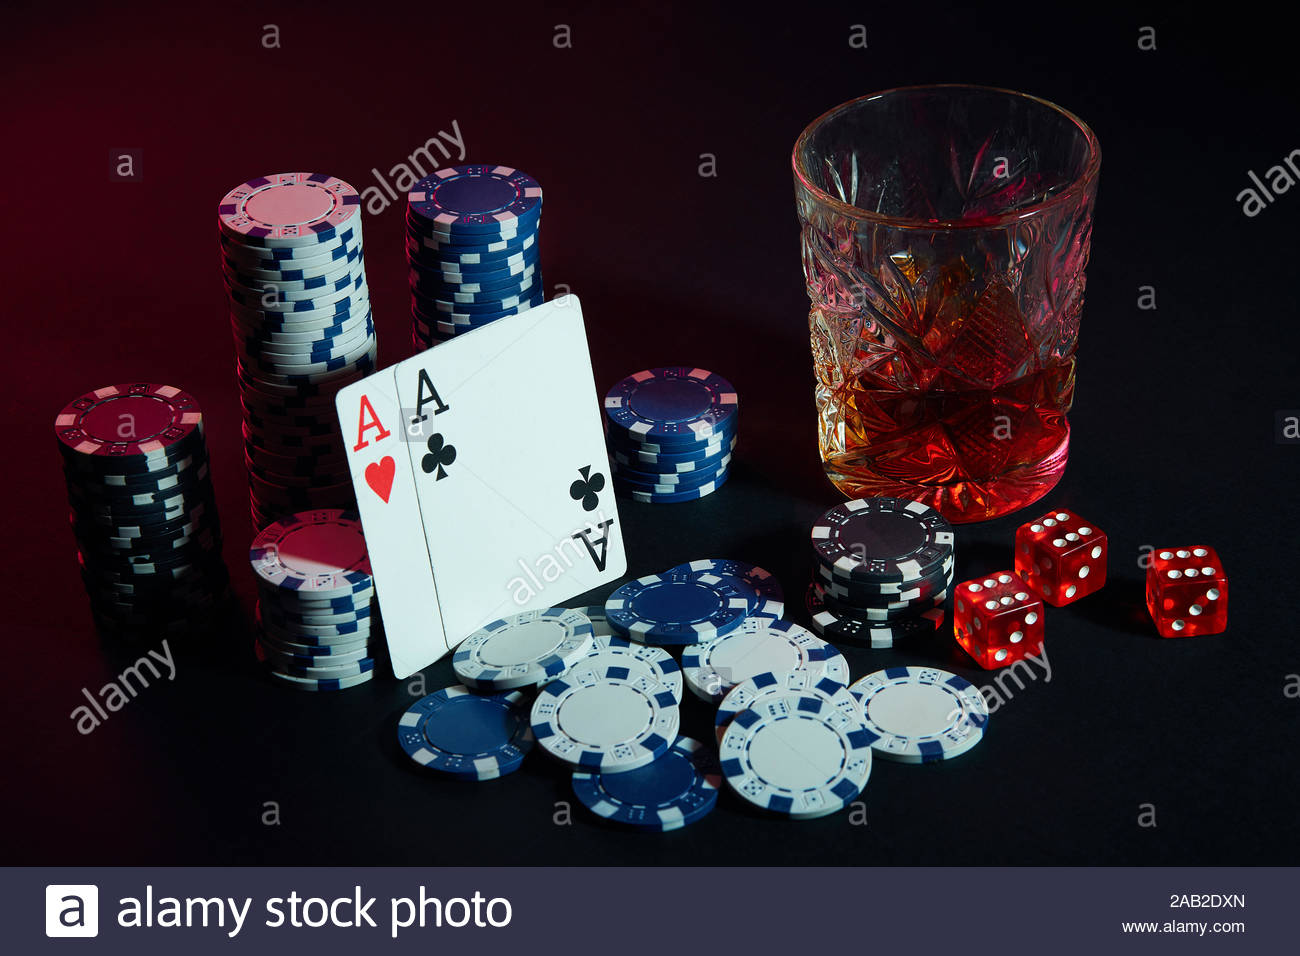 Are You Casino The Proper Manner